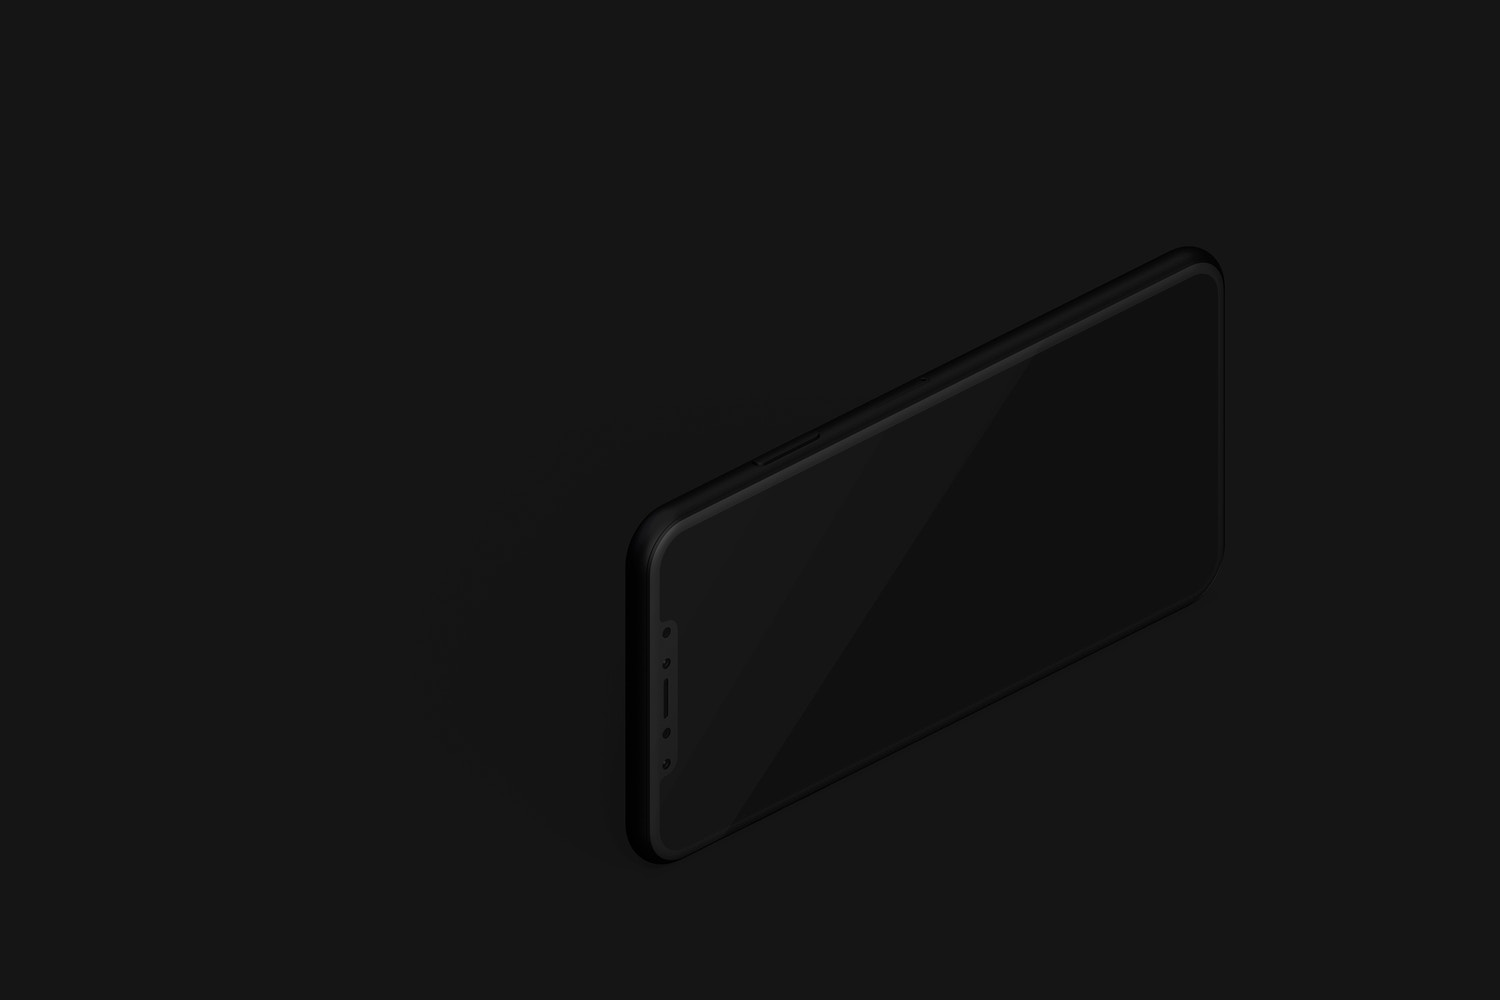 Isometric Clay iPhone XS Max Mockup, Left View 03 (3) by Original Mockups on Original Mockups